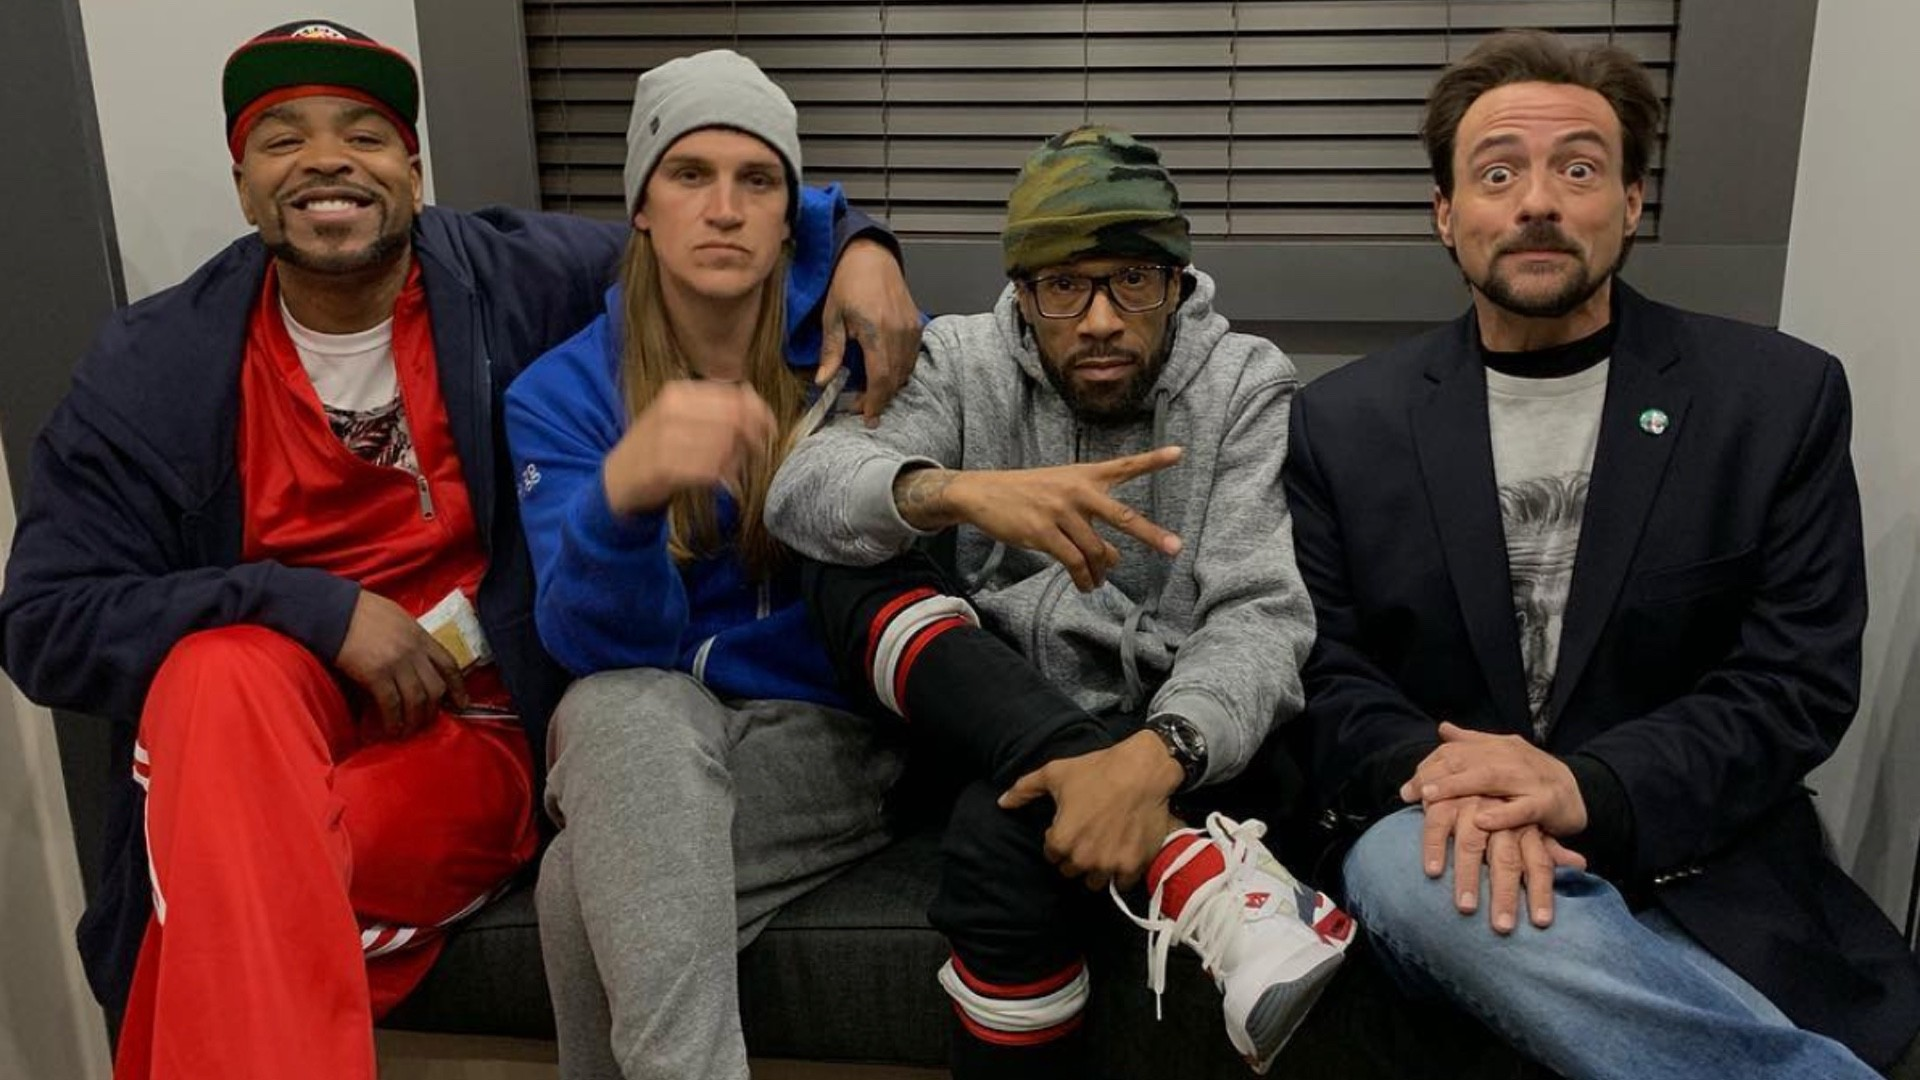 1920x1080 Kevin Smith Casts Method Man and Redman in JAY AND SILENT BOB REBOOT —  GeekTyrant